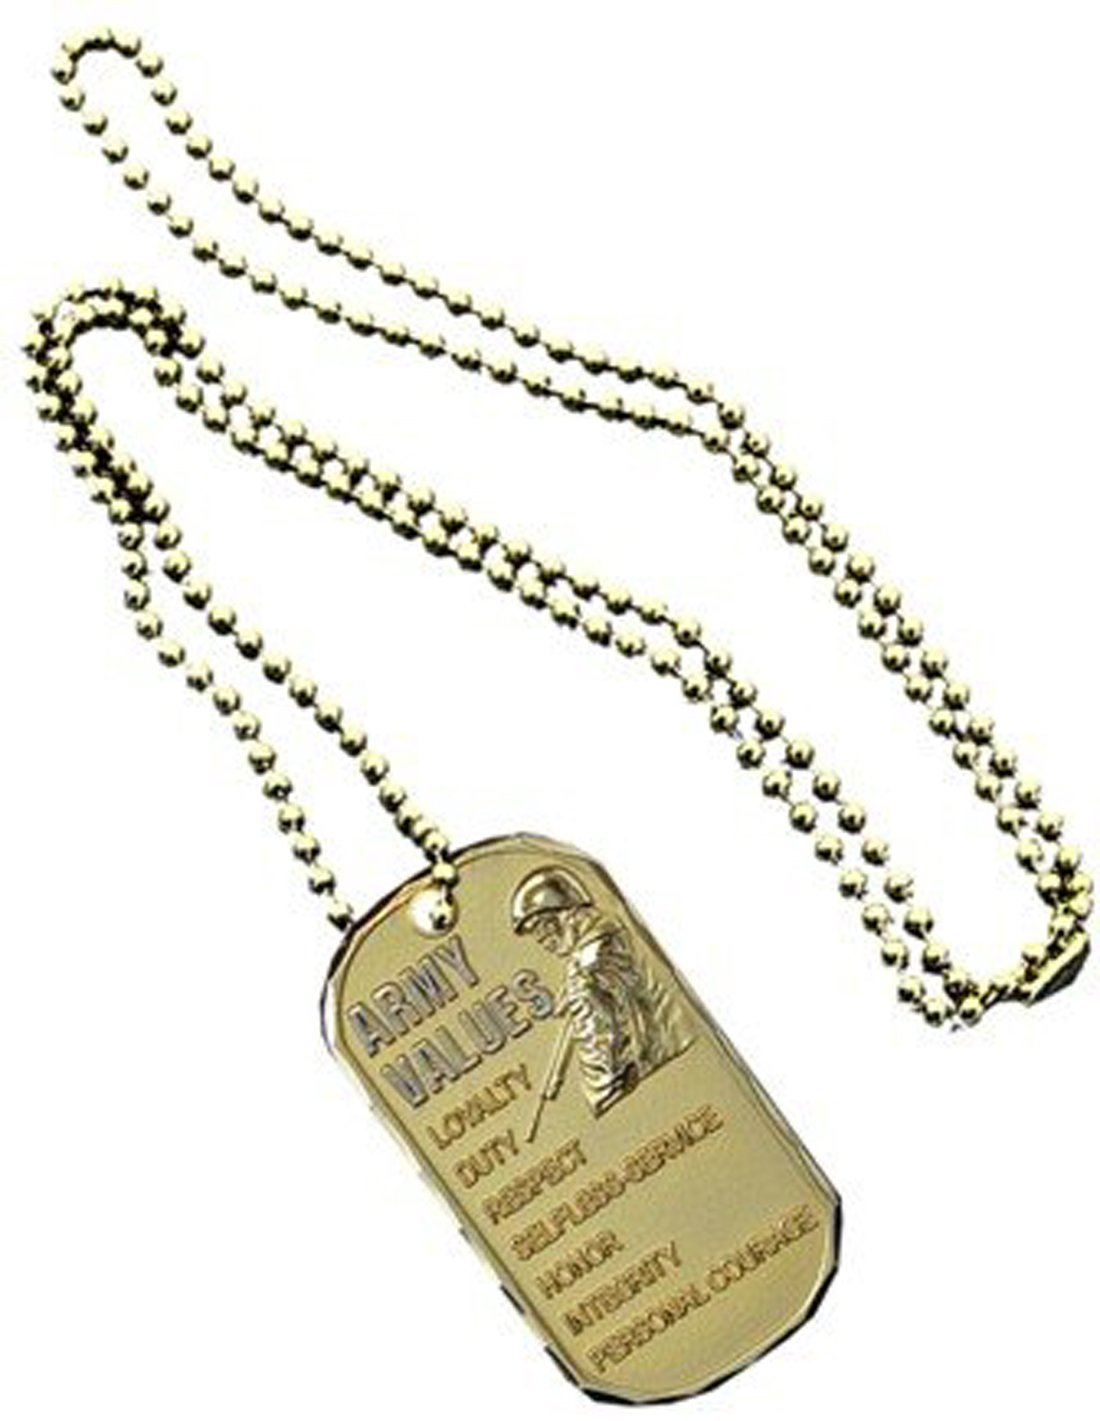 Dog Tag Key Chain Necklace US Military Army Values